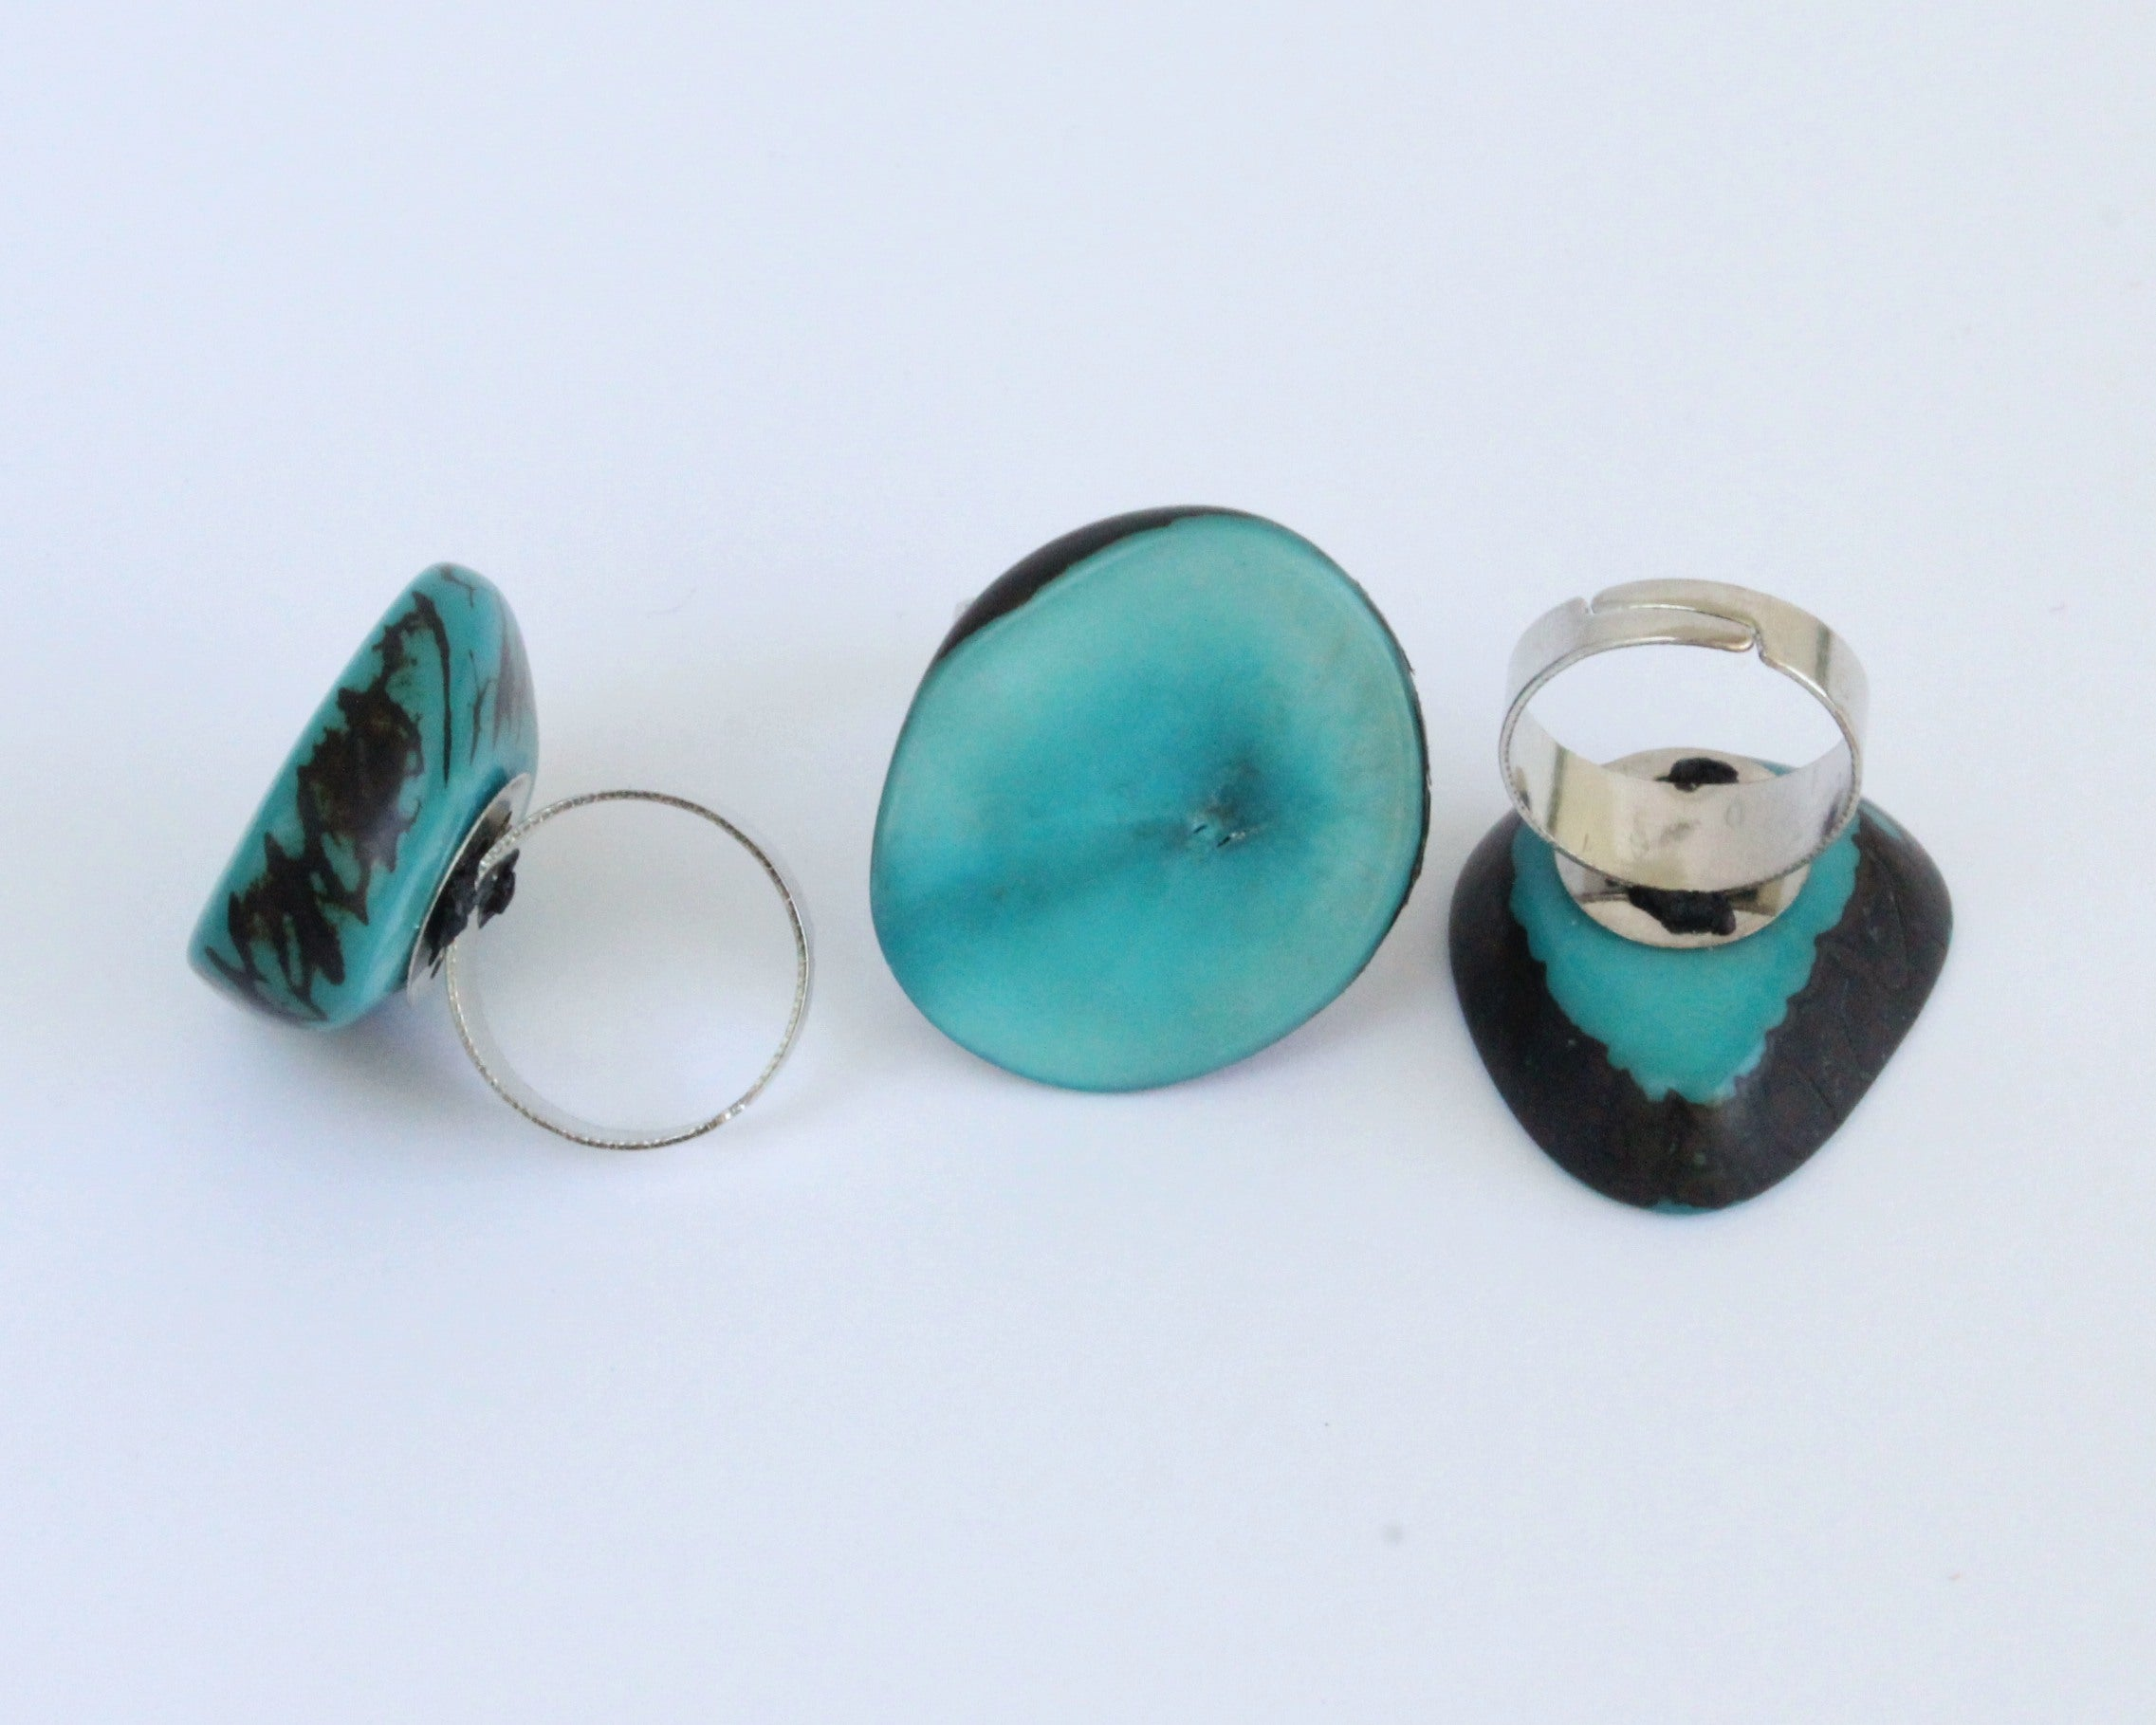 Handmade ring, tagua, turquoise, adjustable ring size, sustainable, ethical, three mixed